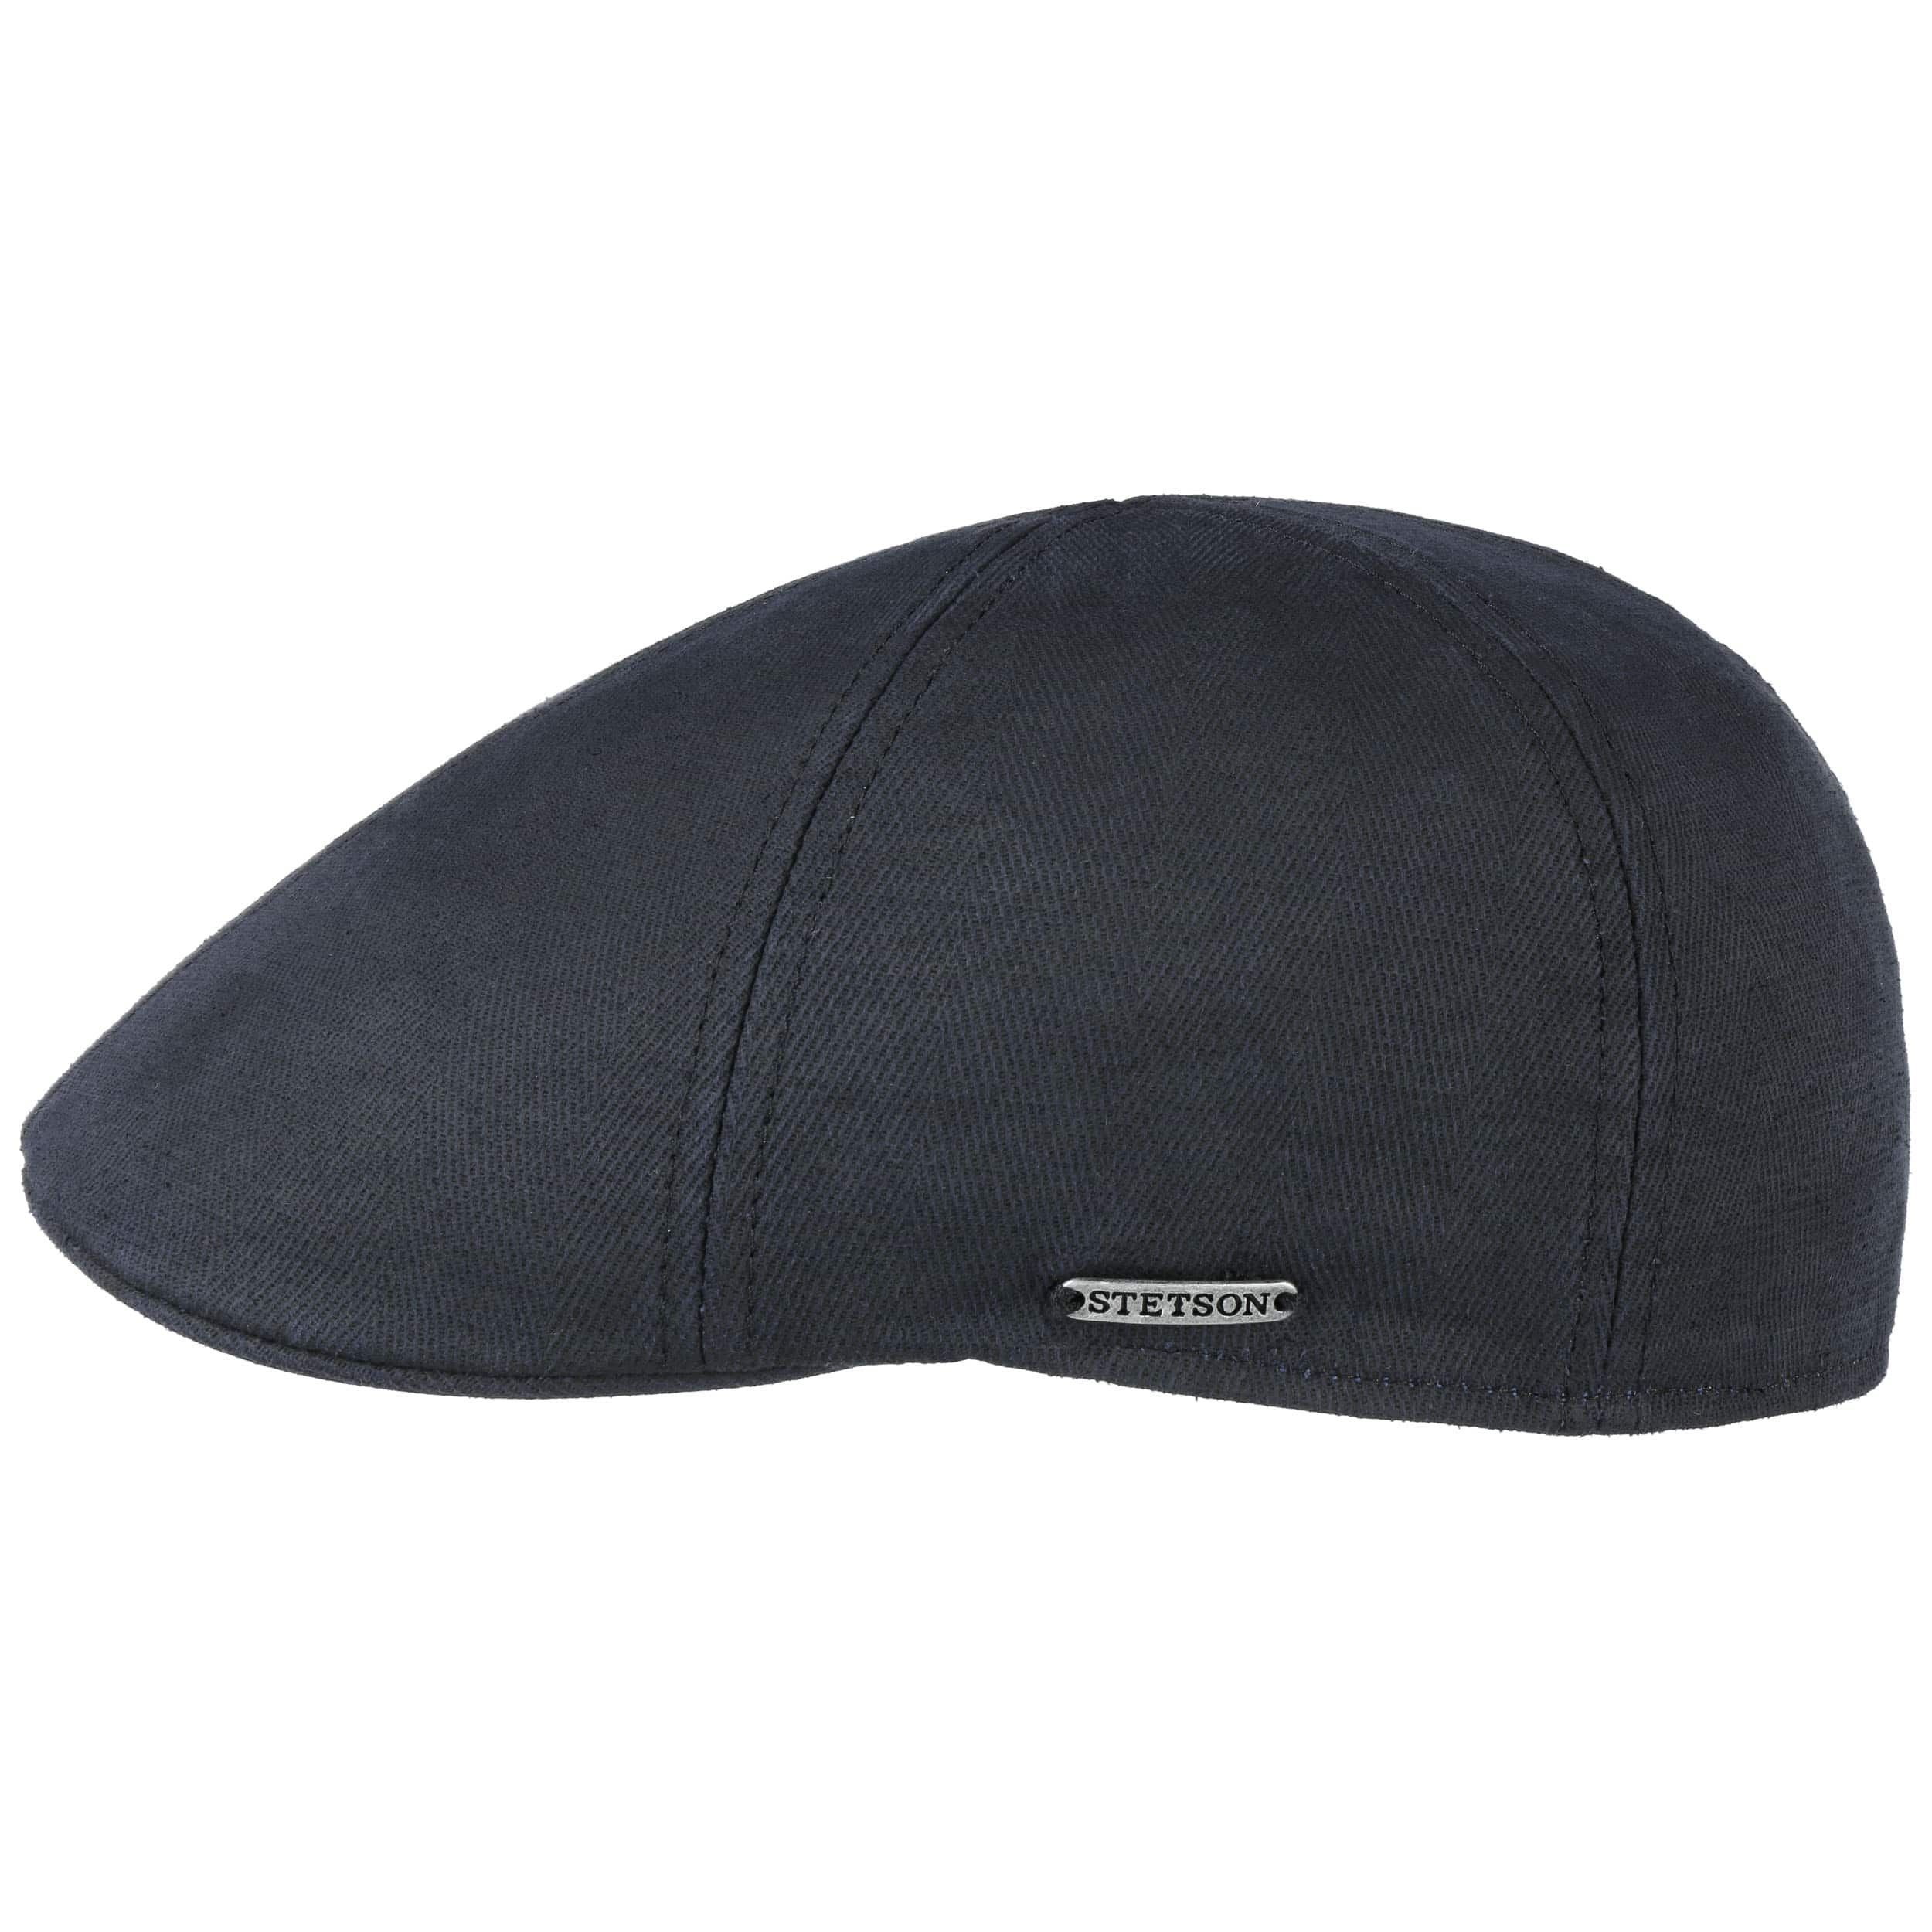 Texas Cotton-Mix Flatcap dunkelblau